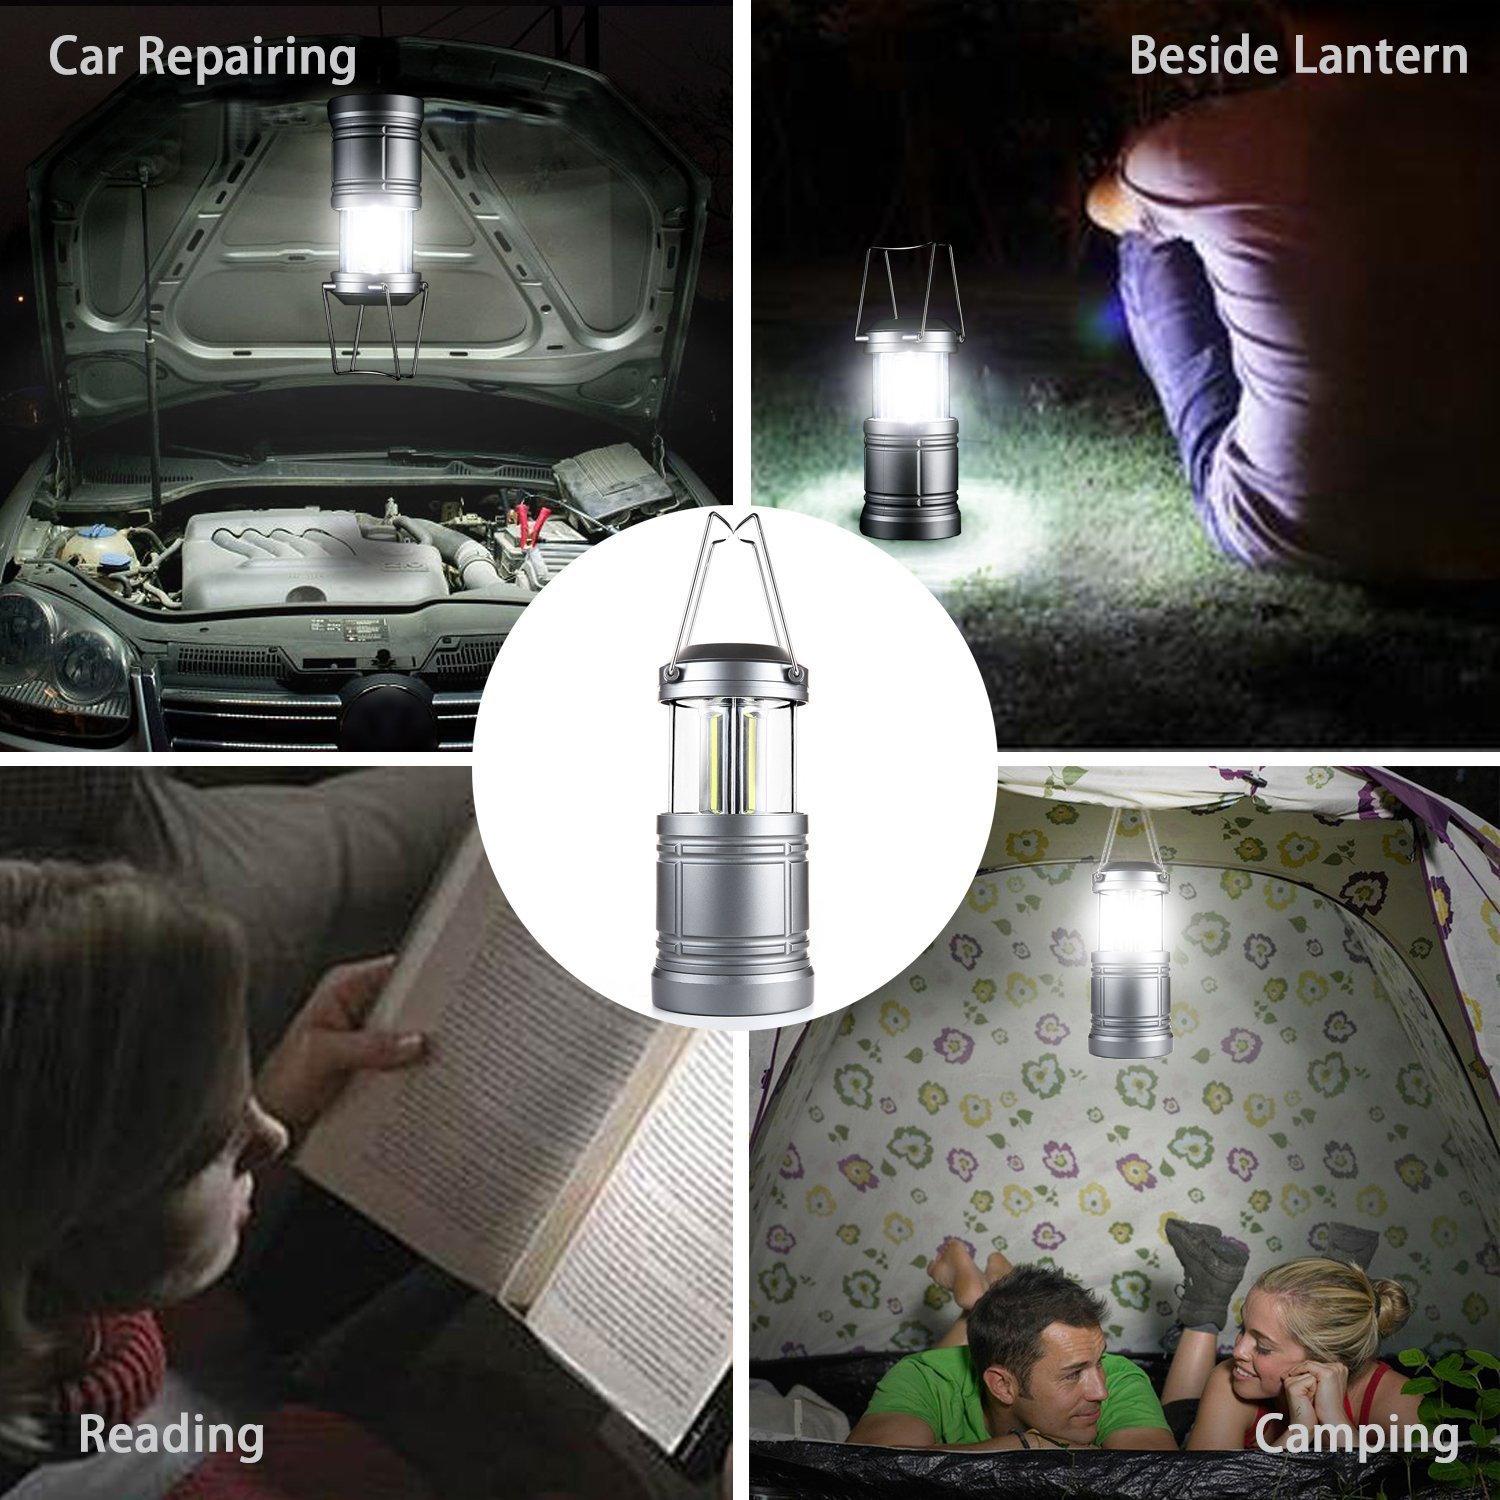 Hurricane LED Camping Lantern Lights with Magnetic Base Power Outage Lantern Battery Powered for Emergency COB LED Technology 500 Lumens Collapsible Camping Lights Outage Storms 4 Pack